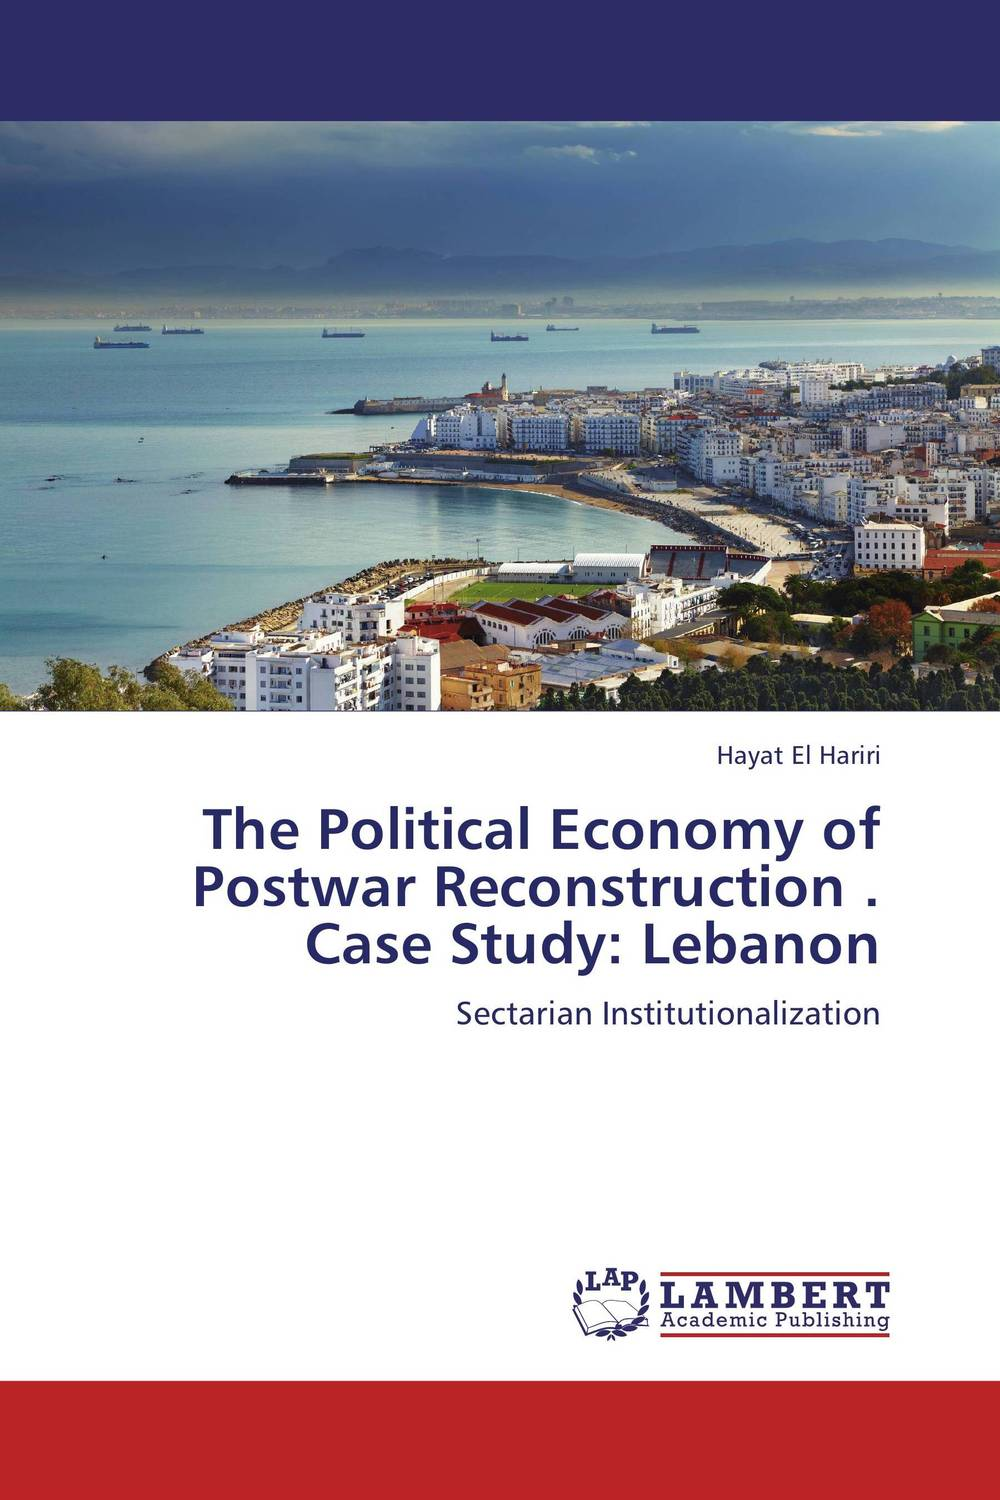 The Political Economy of Postwar Reconstruction . Case Study: Lebanon кошельки бумажники и портмоне mano 20150 croco red